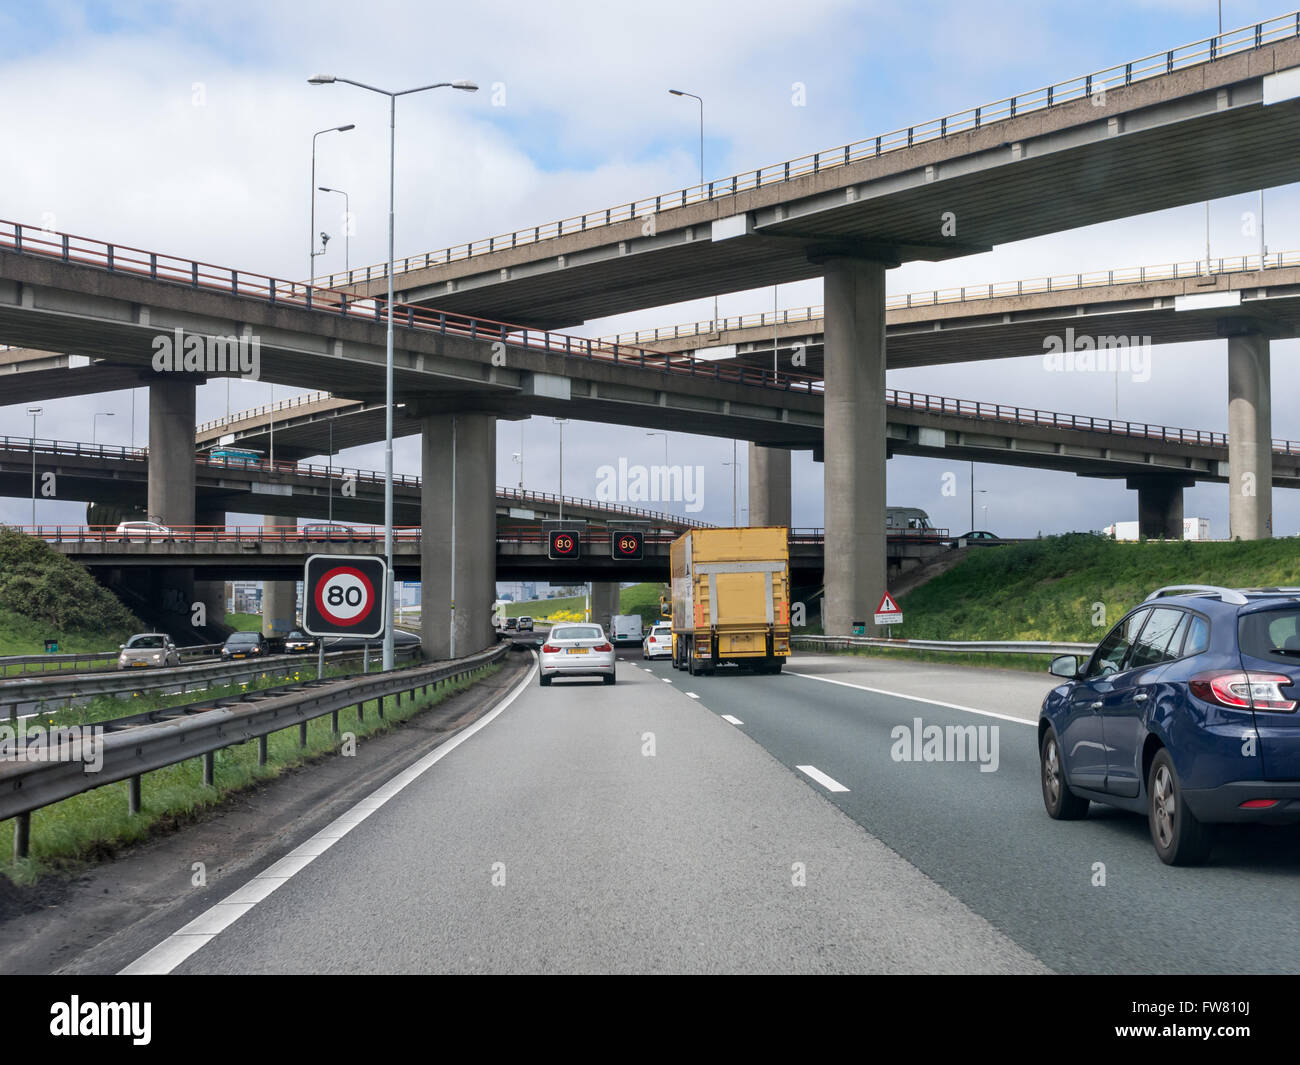 Motorway A12-A4 flyover Prins Clausplein stack interchange in The Hague, Netherlands - Stock Image